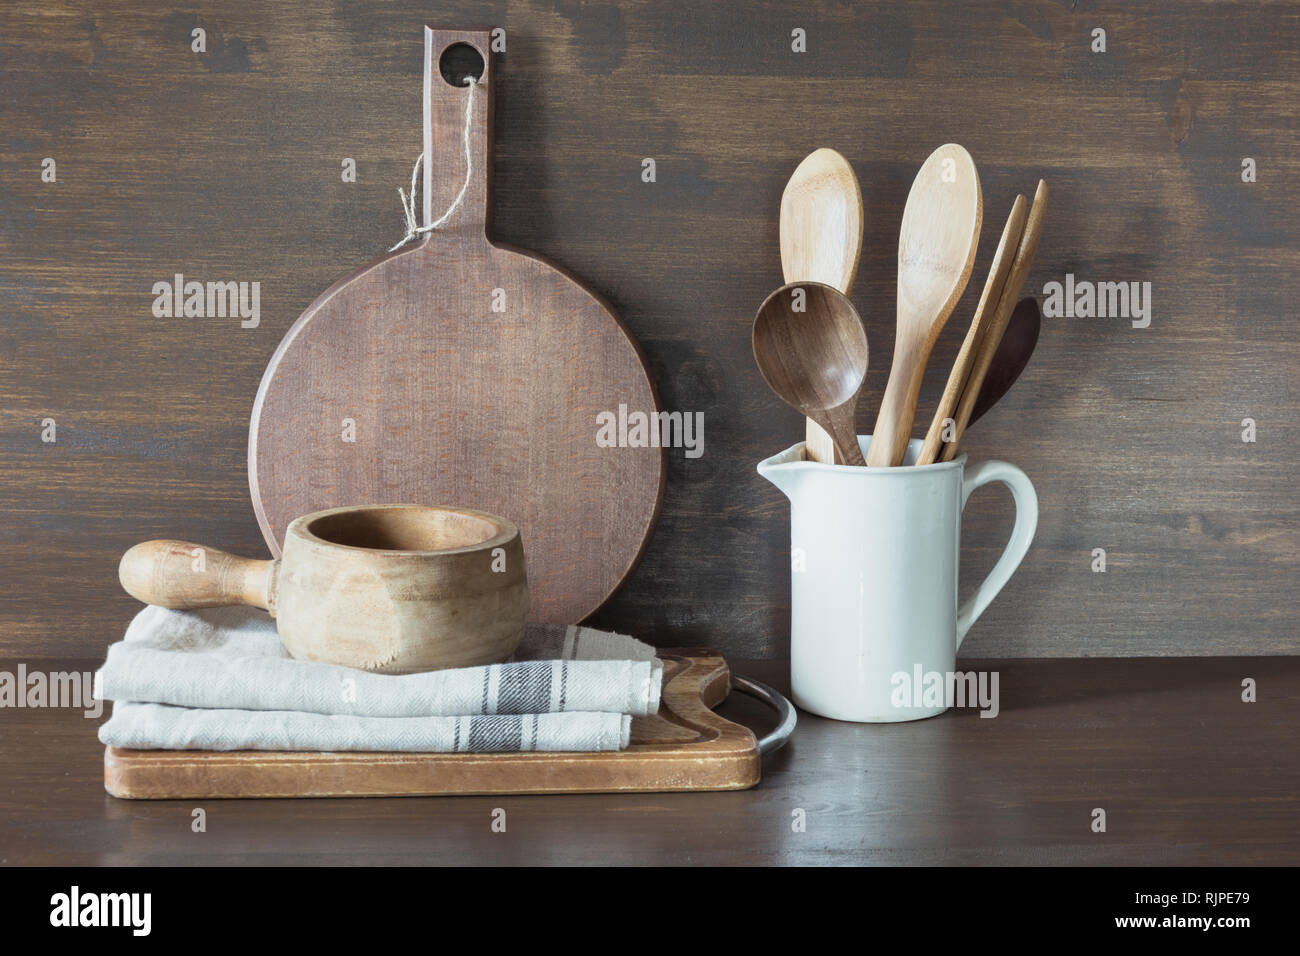 Crockery, clayware, white utensils and other different stuff. Kitchen still life. - Stock Image